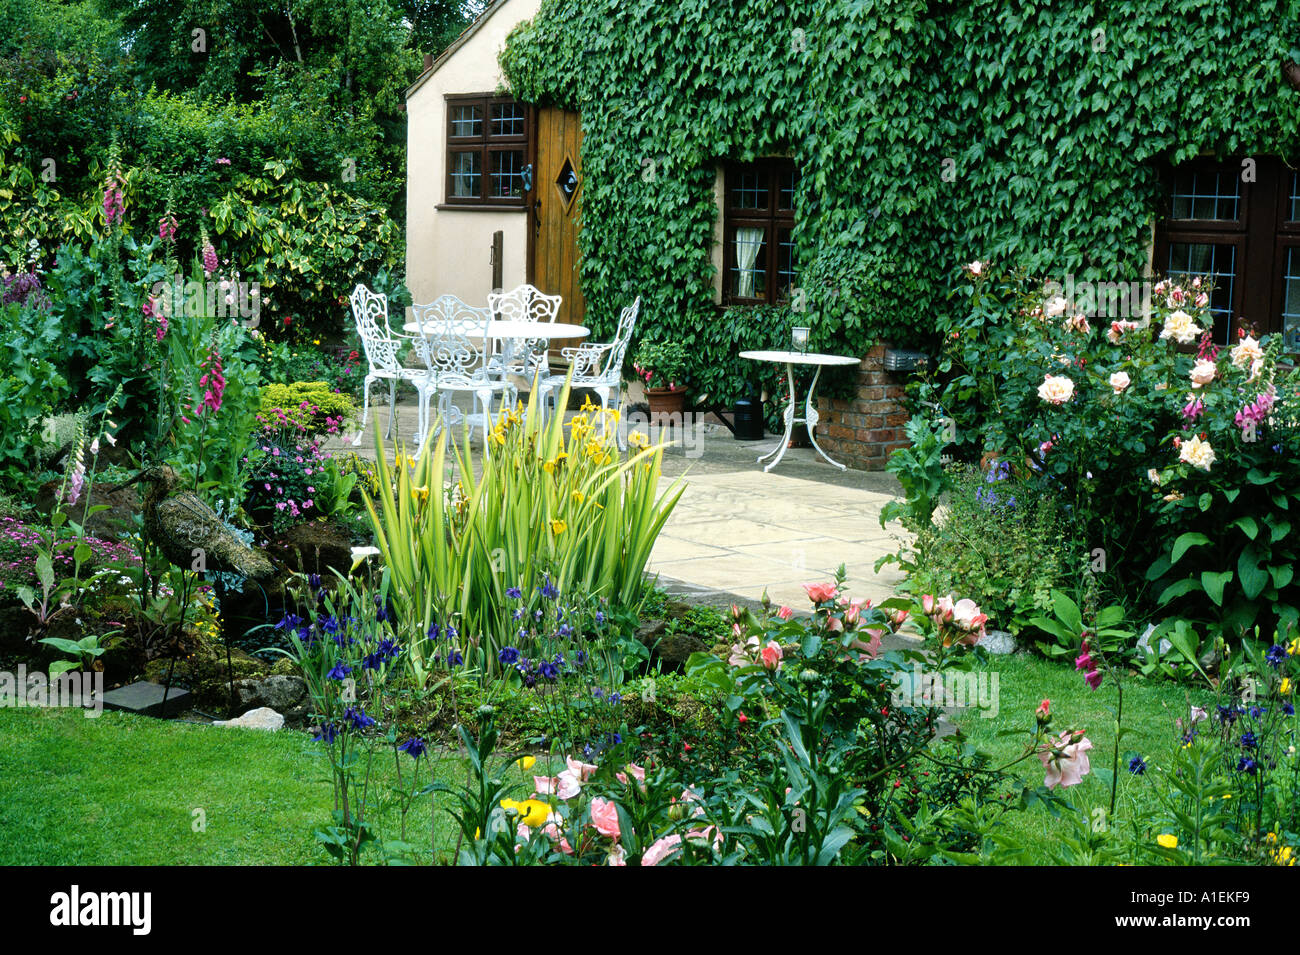 Pond Patio House And Small Garden Plants Flowers Table Chairs